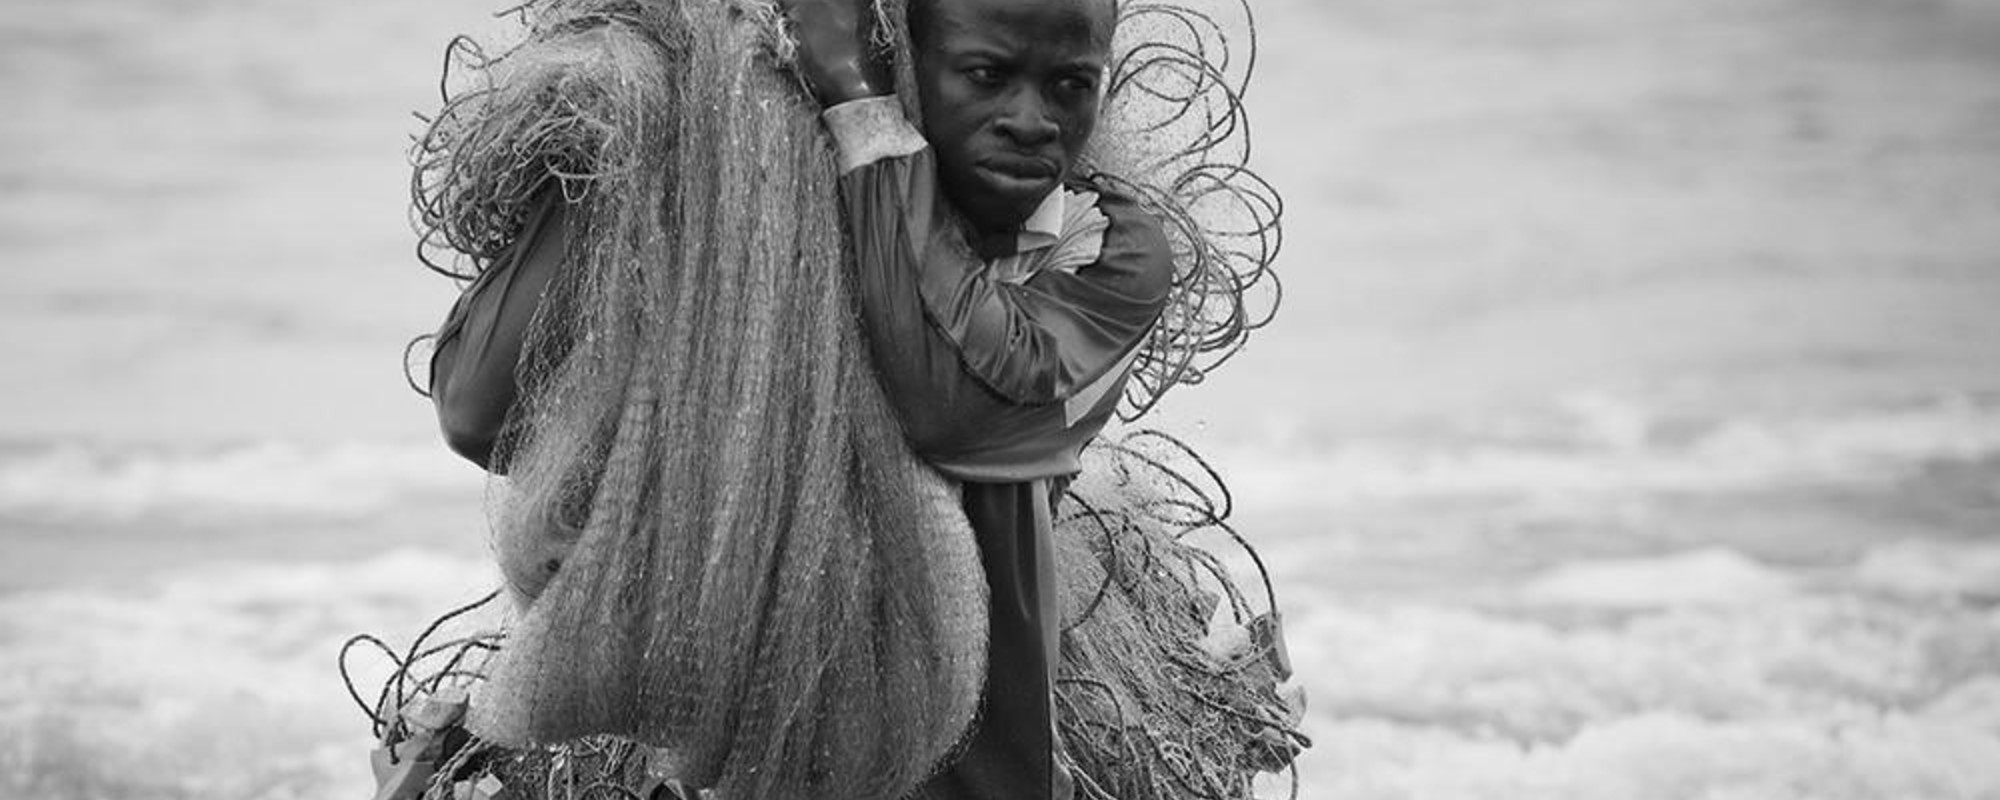 The Fishermen of Ghana